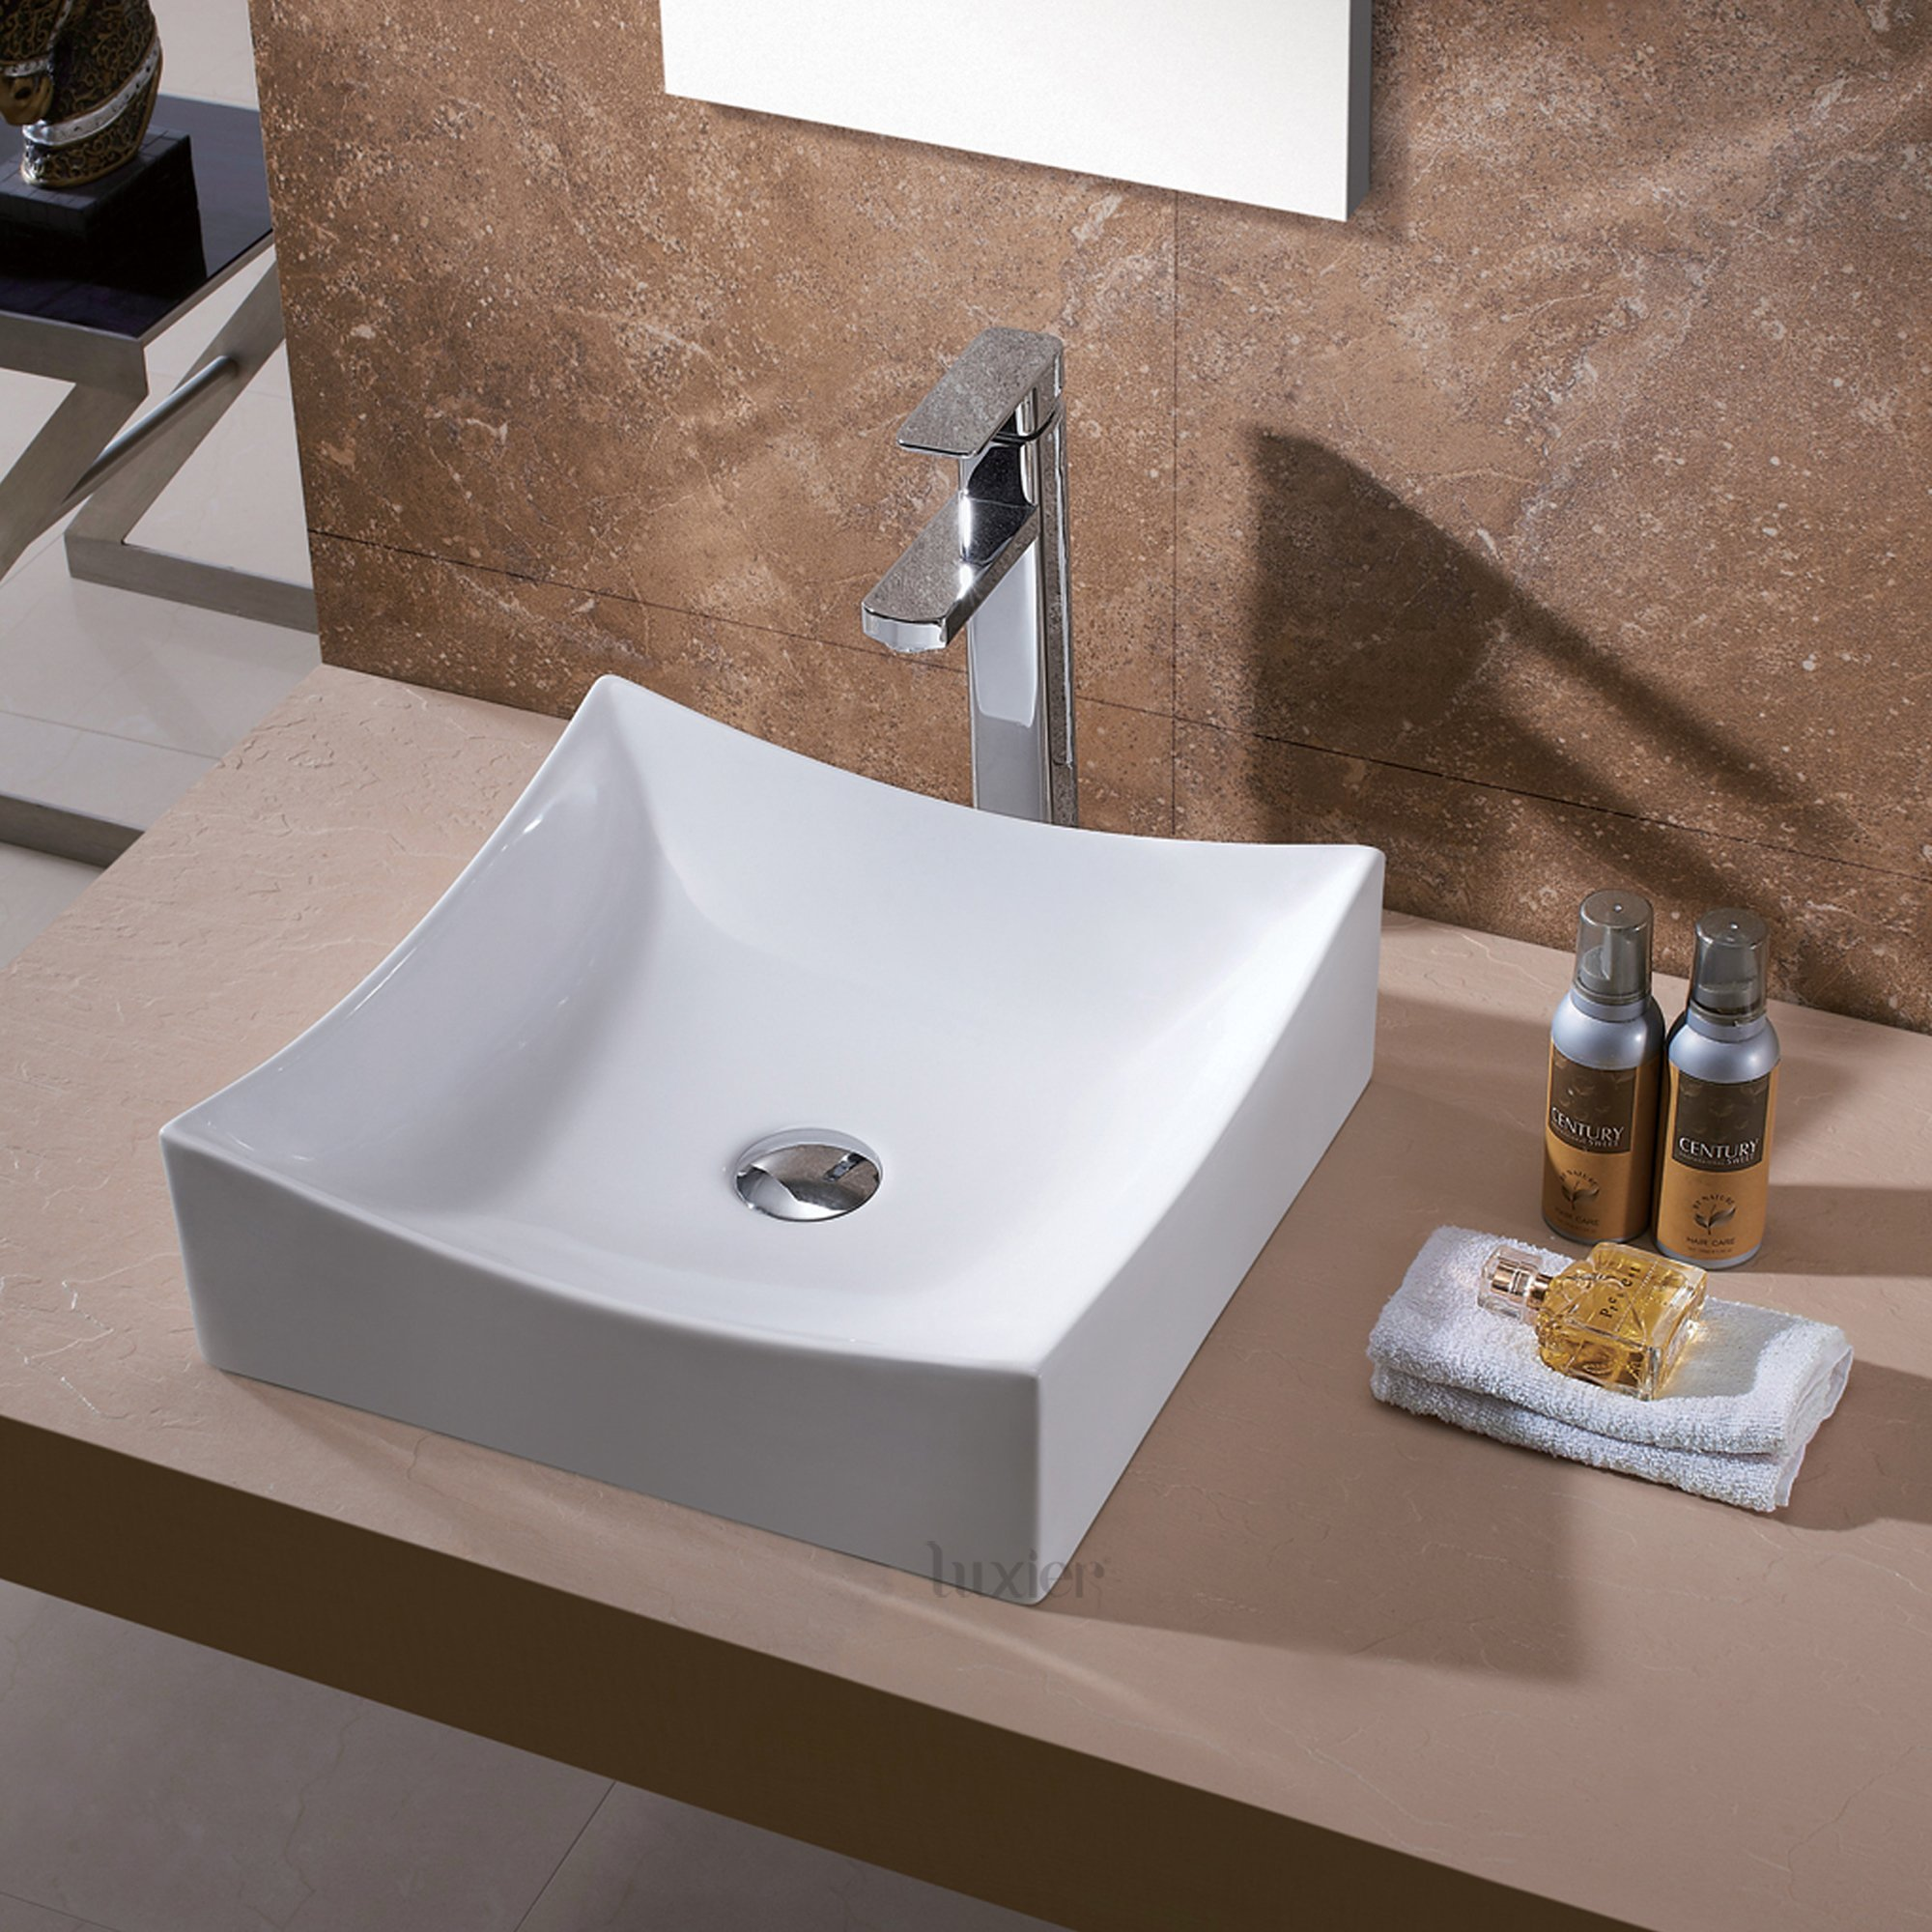 Luxier CS-016 Bathroom Porcelain Ceramic Vessel Vanity Sink Art Basin by Luxier